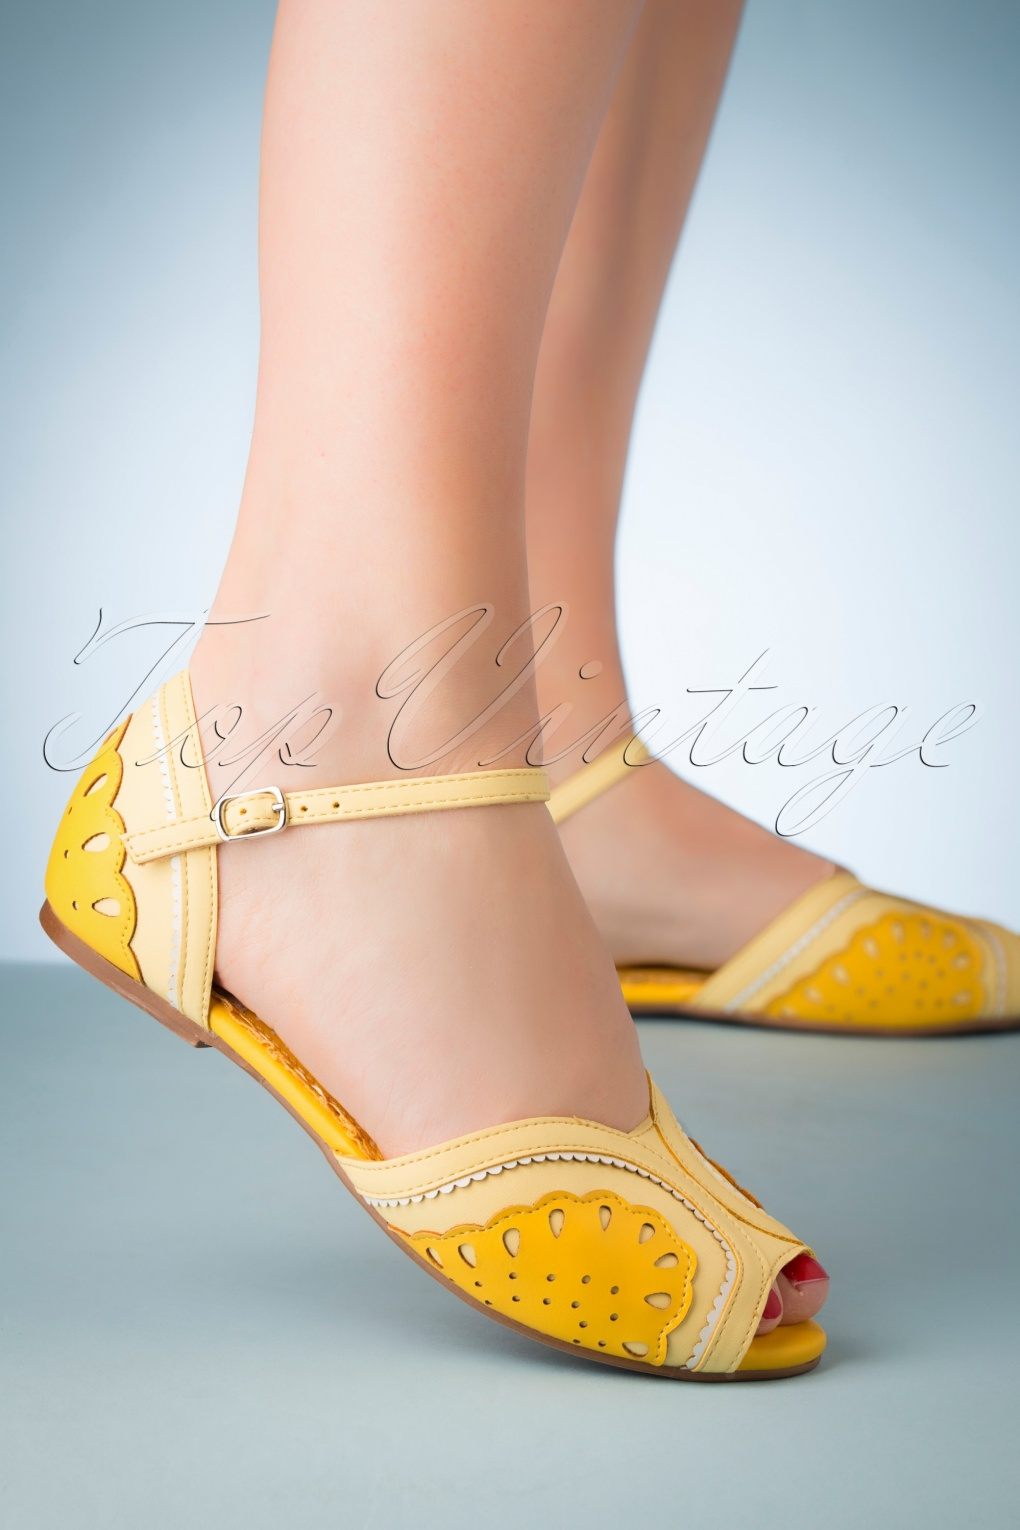 Retro Vintage Flats and Low Heel Shoes 50s Fruitie Peeptoe Flats in Yellow �60.95 AT vintagedancer.com